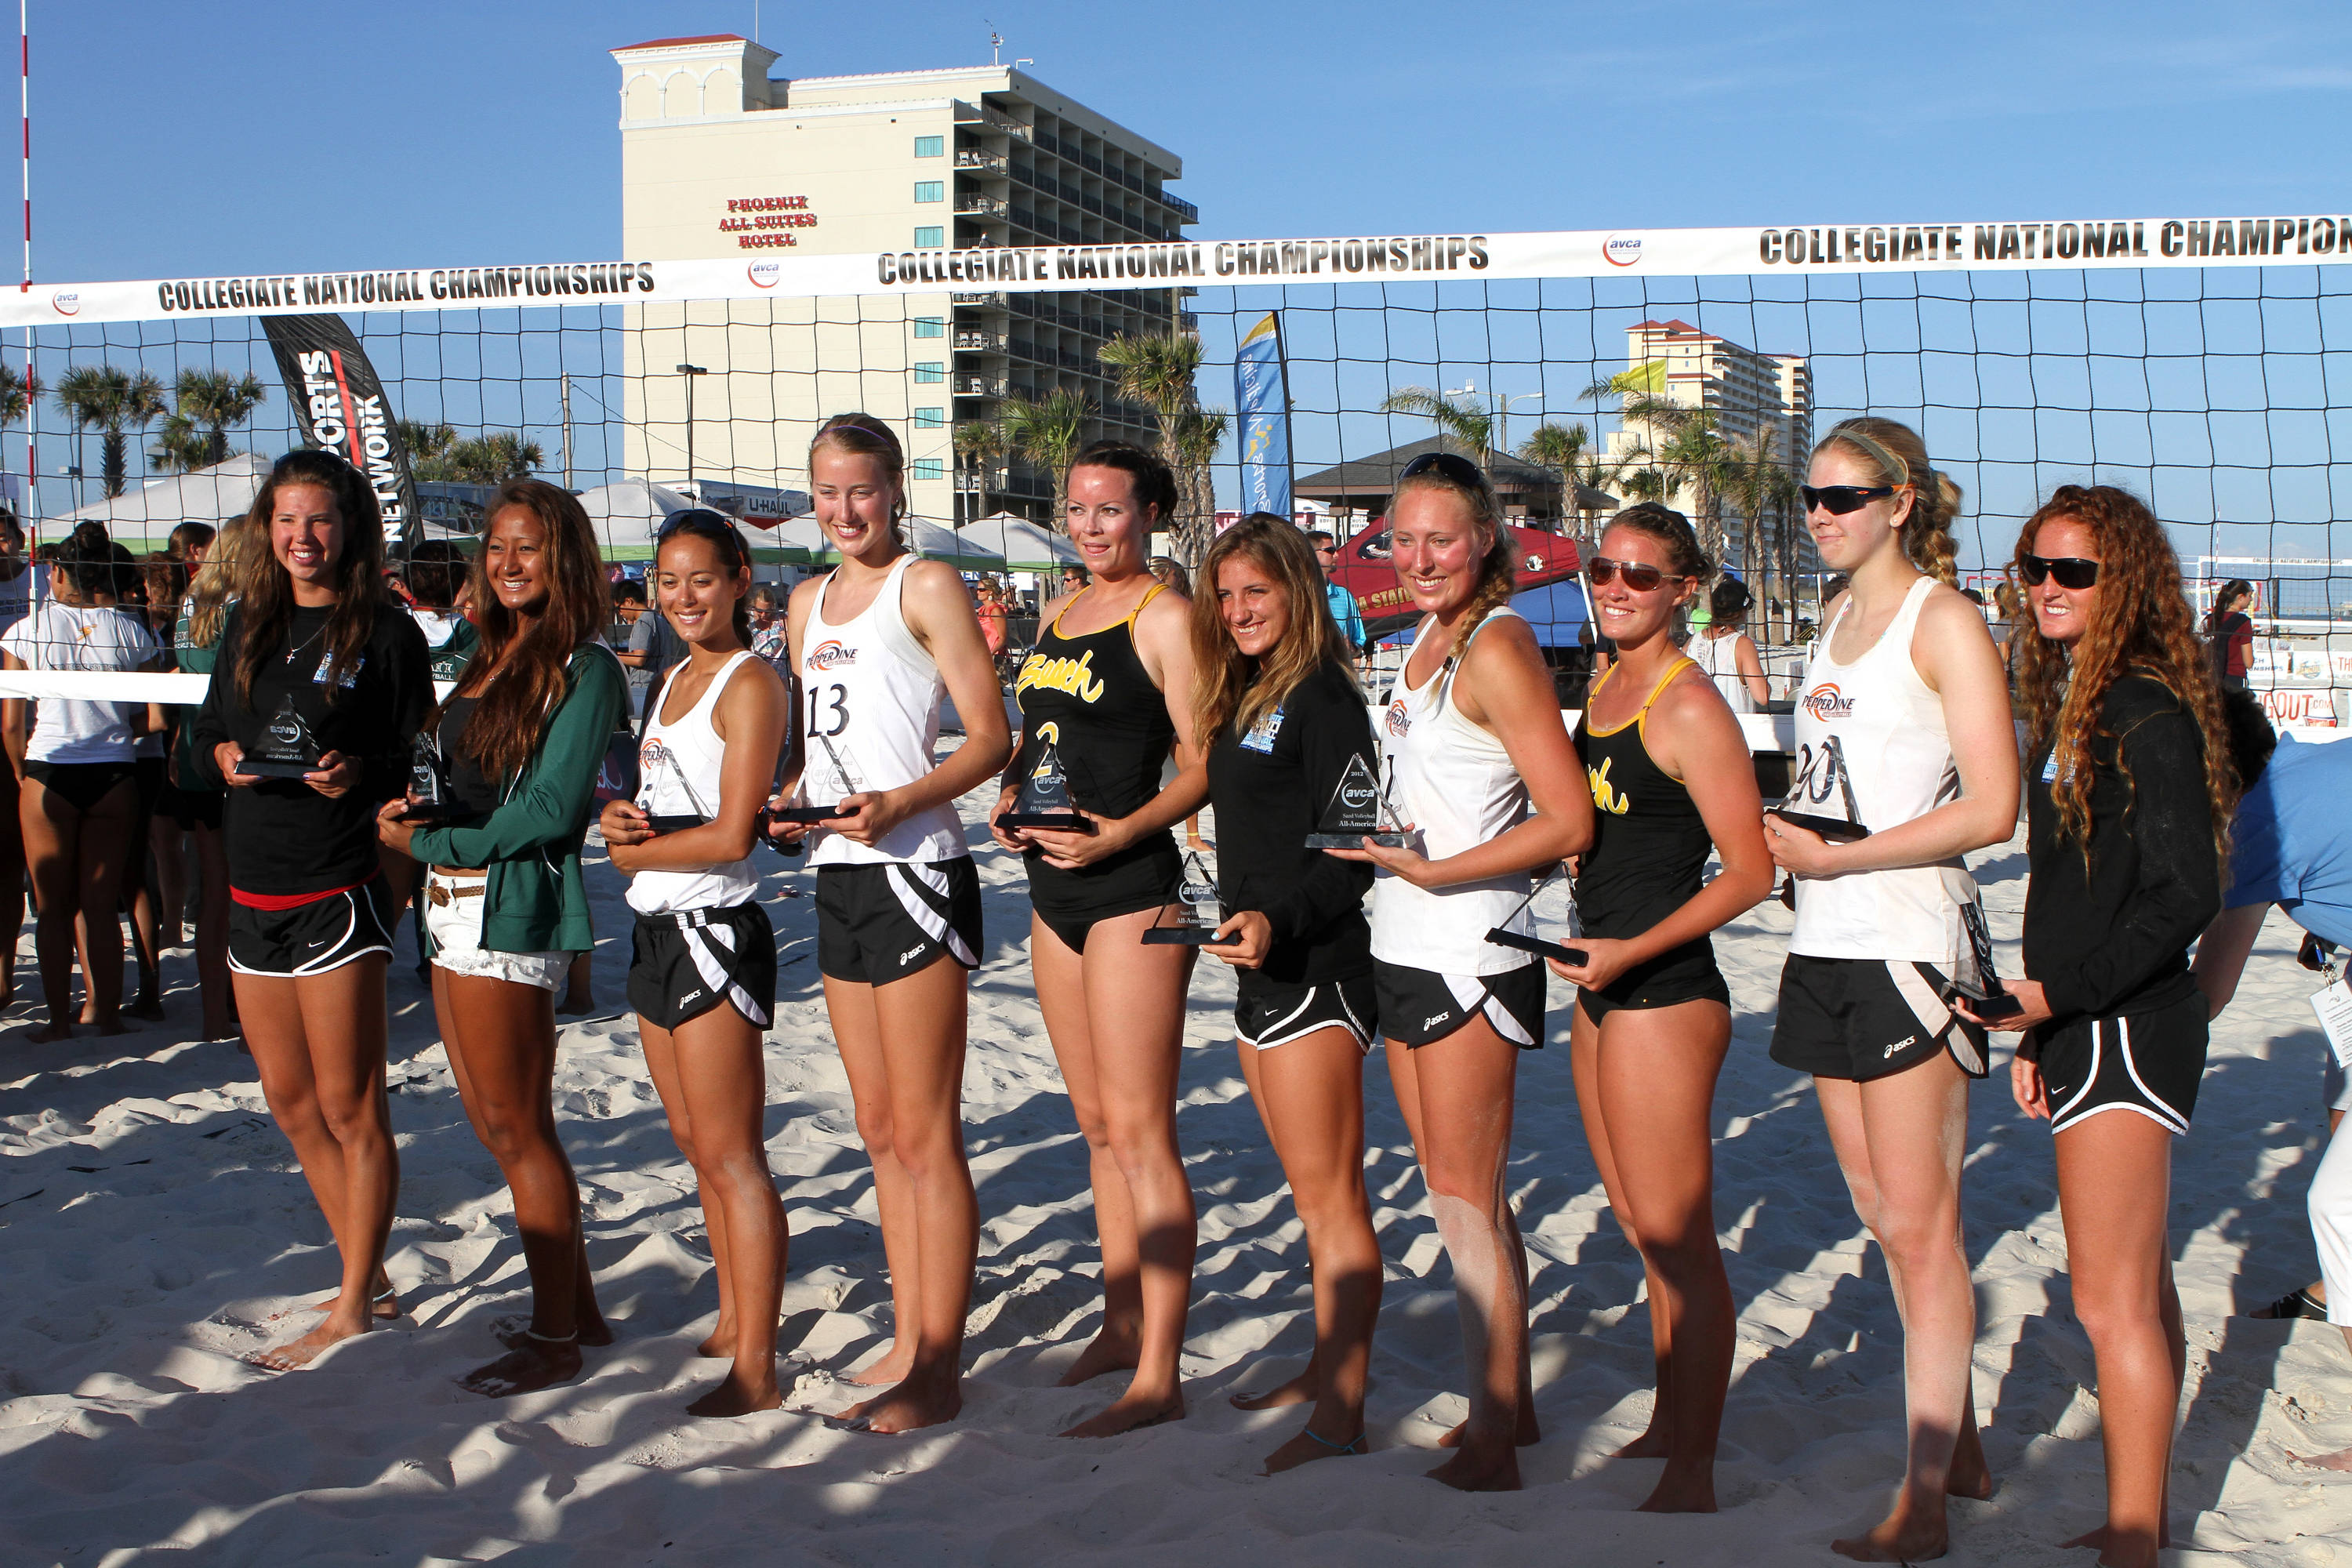 First group of Women's All American Volleyball Players, SAND VOLLEYBALL COLLEGIATE CHAMPIONSHIPS,  04/28/2012